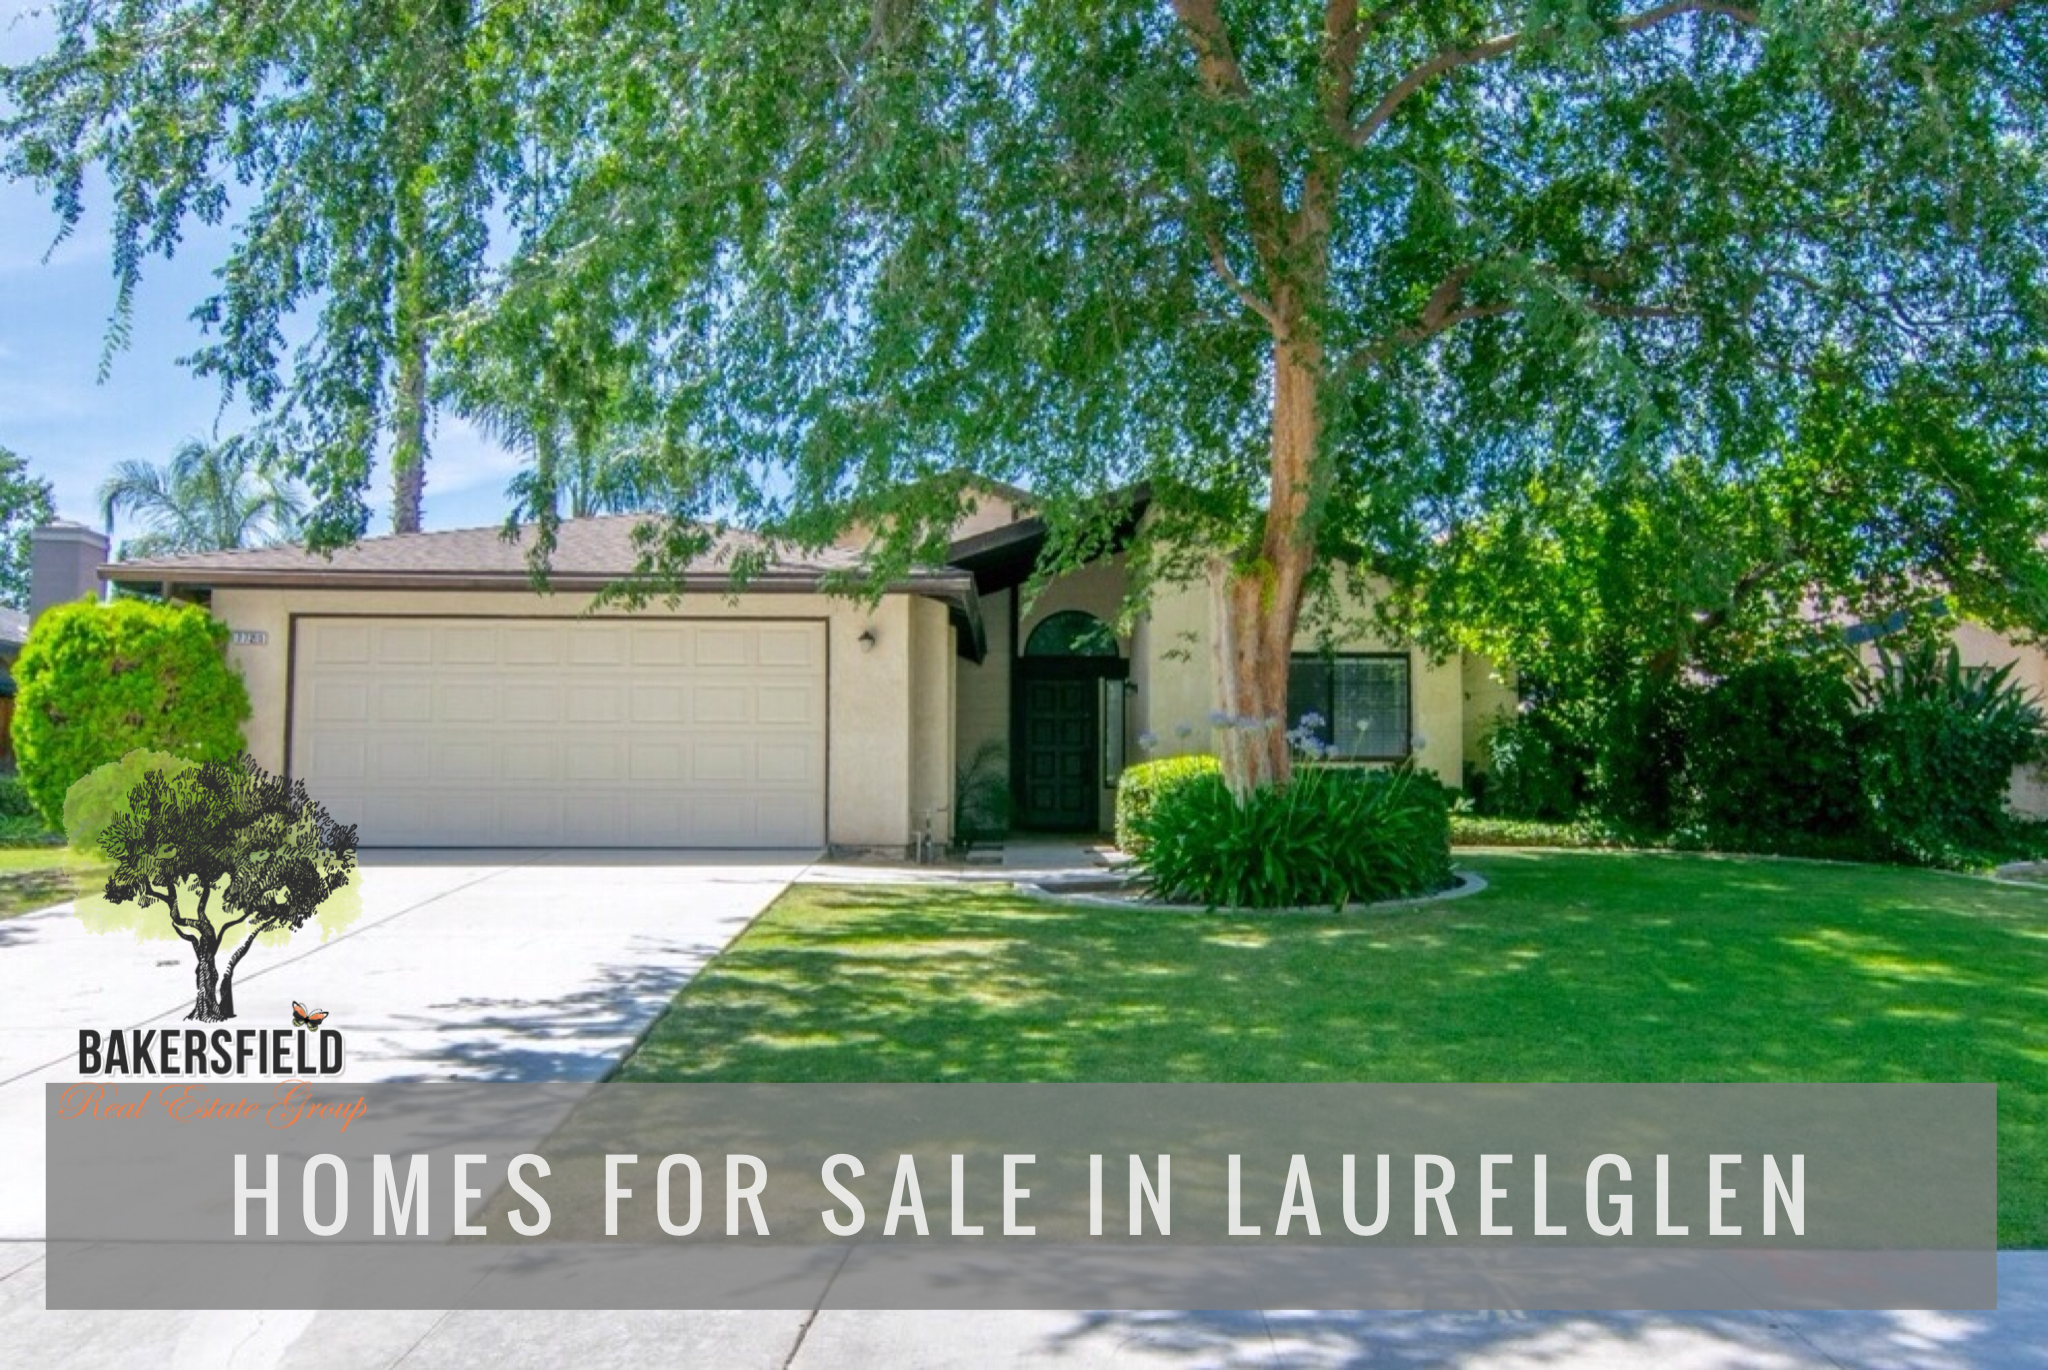 Homes for sale in Laurelglen - Bakersfield, CA 93309 - Linda Banales 661-704-4244